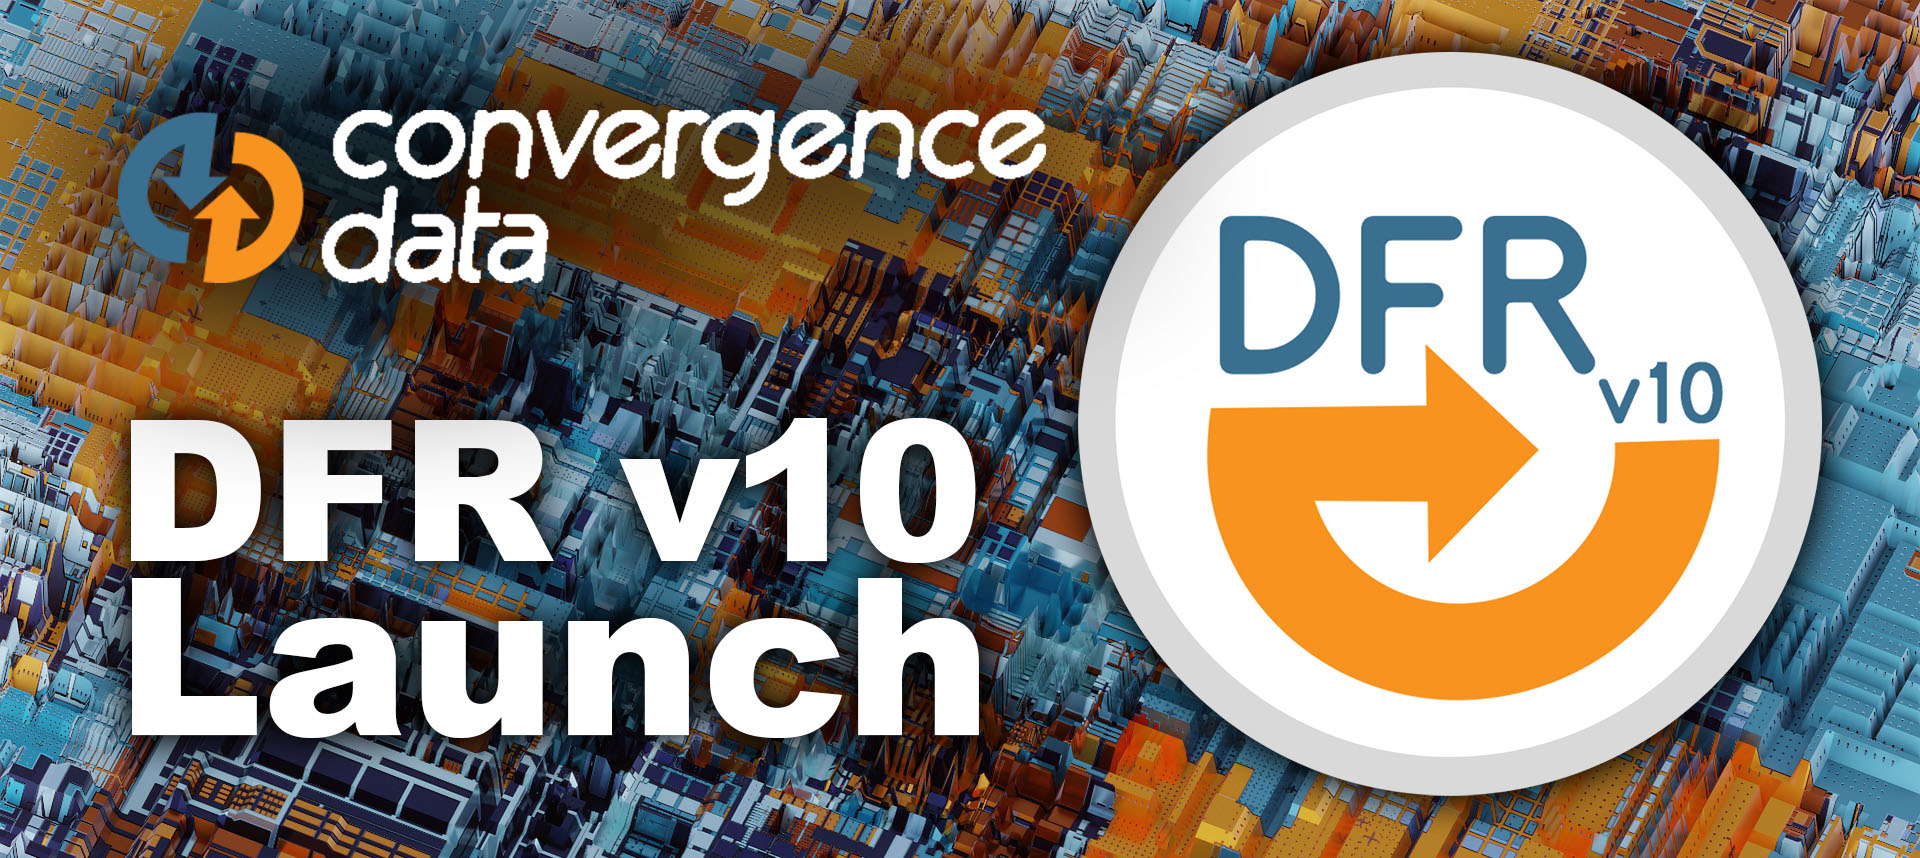 DFRv10 Parts Classification Product Launch